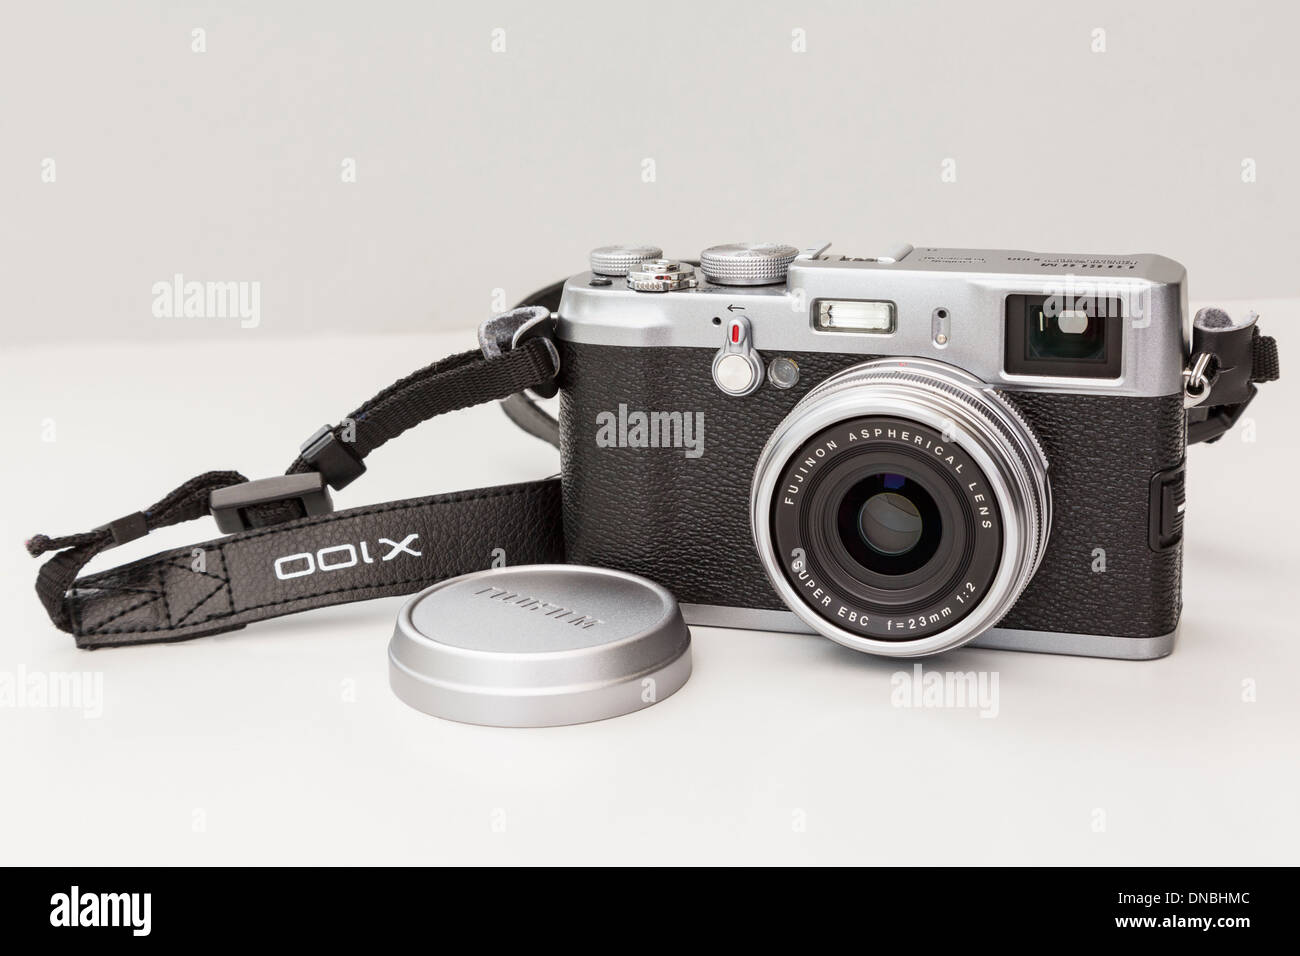 Fujifilm X100 traditional style retro compact digital camera with a fixed lens. - Stock Image